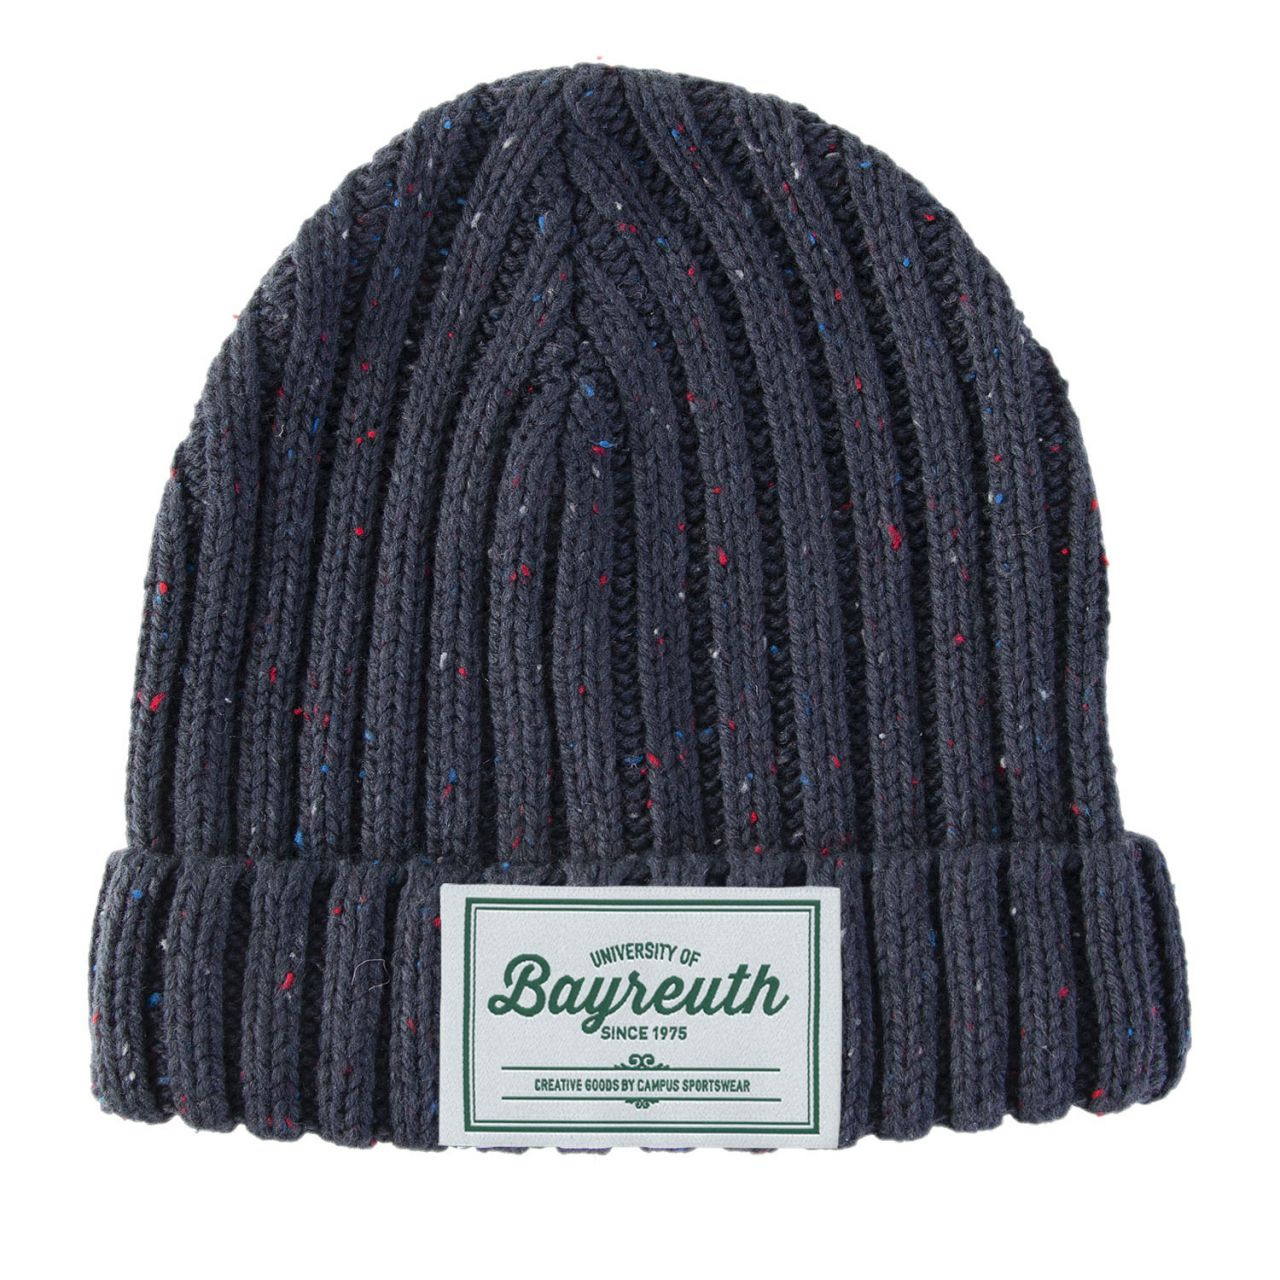 Strickmütze, navy, label